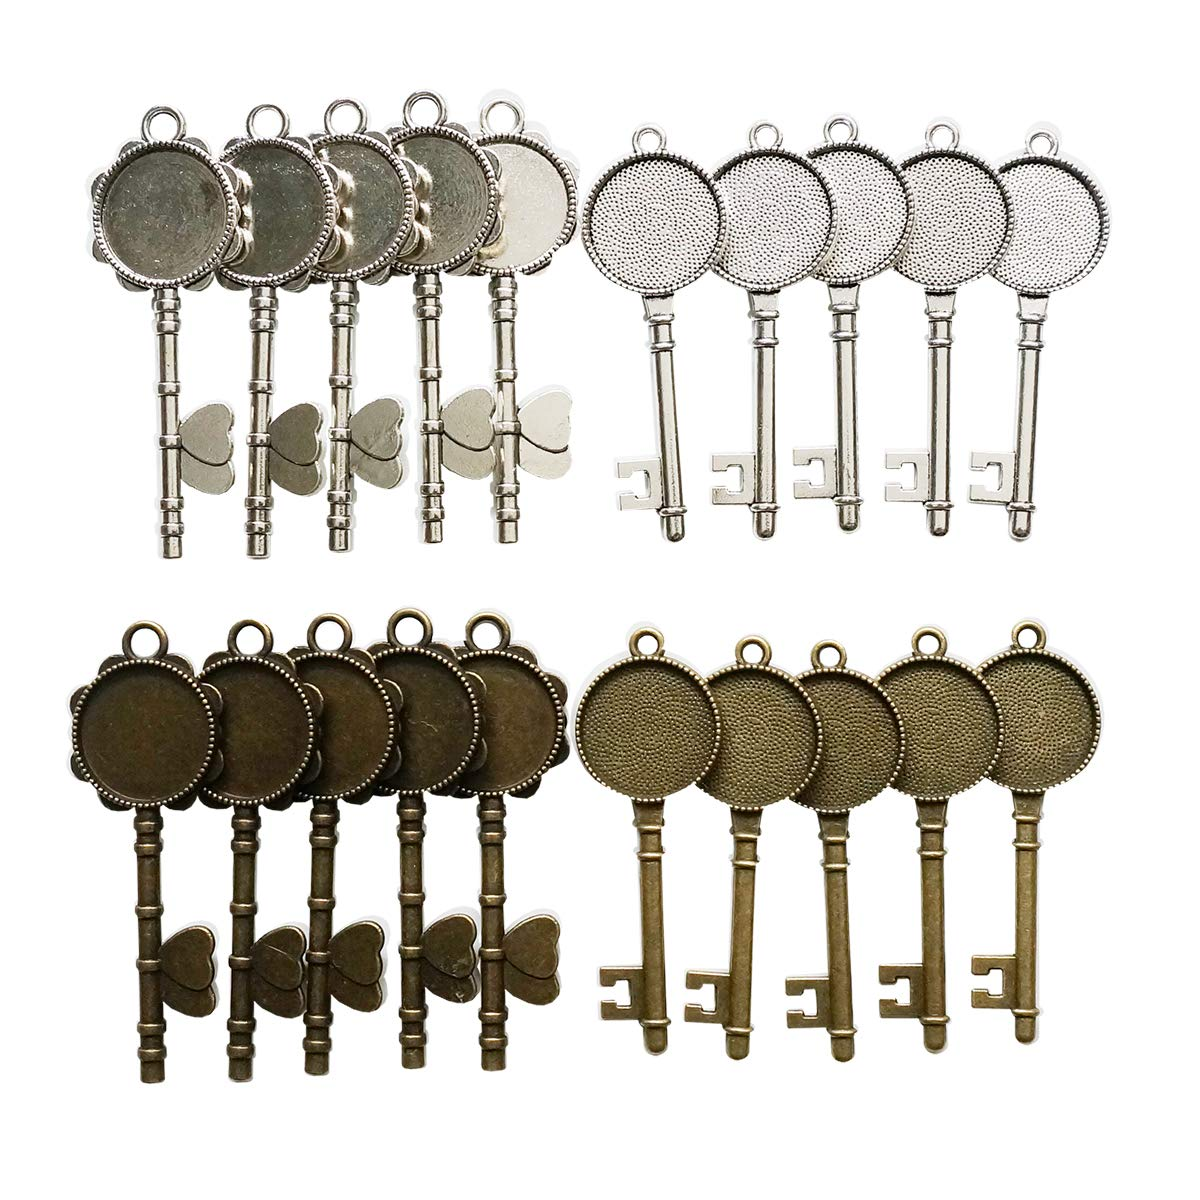 Gnognauq 20 Pcs Vintage Skeleton Keys Pendant Trays with 20 Pieces Glass Dome Tiles Cabochon for Jewelry Making Necklaces Accessories (Antique Bronze and Silver)